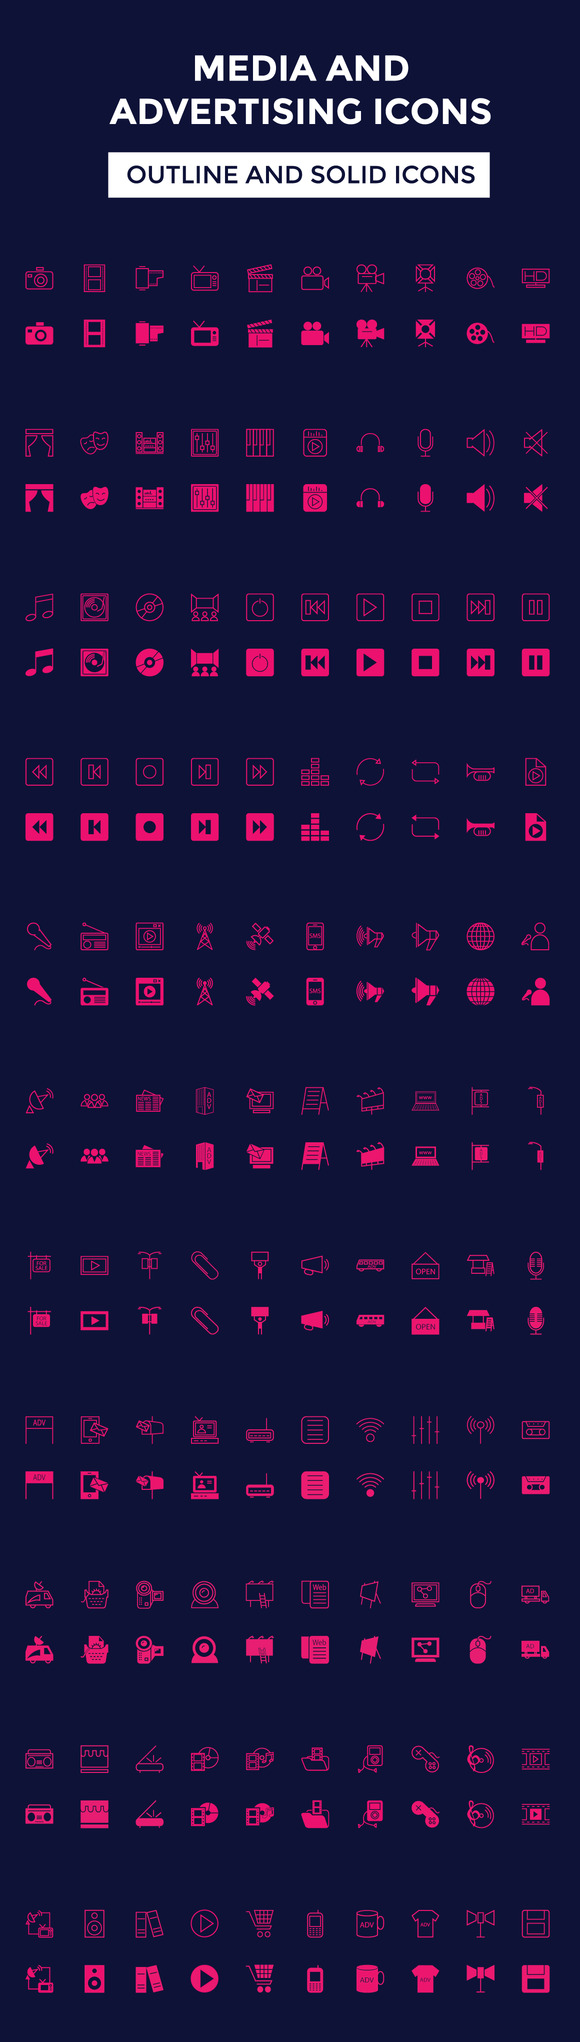 100 Media And Advertising Icons